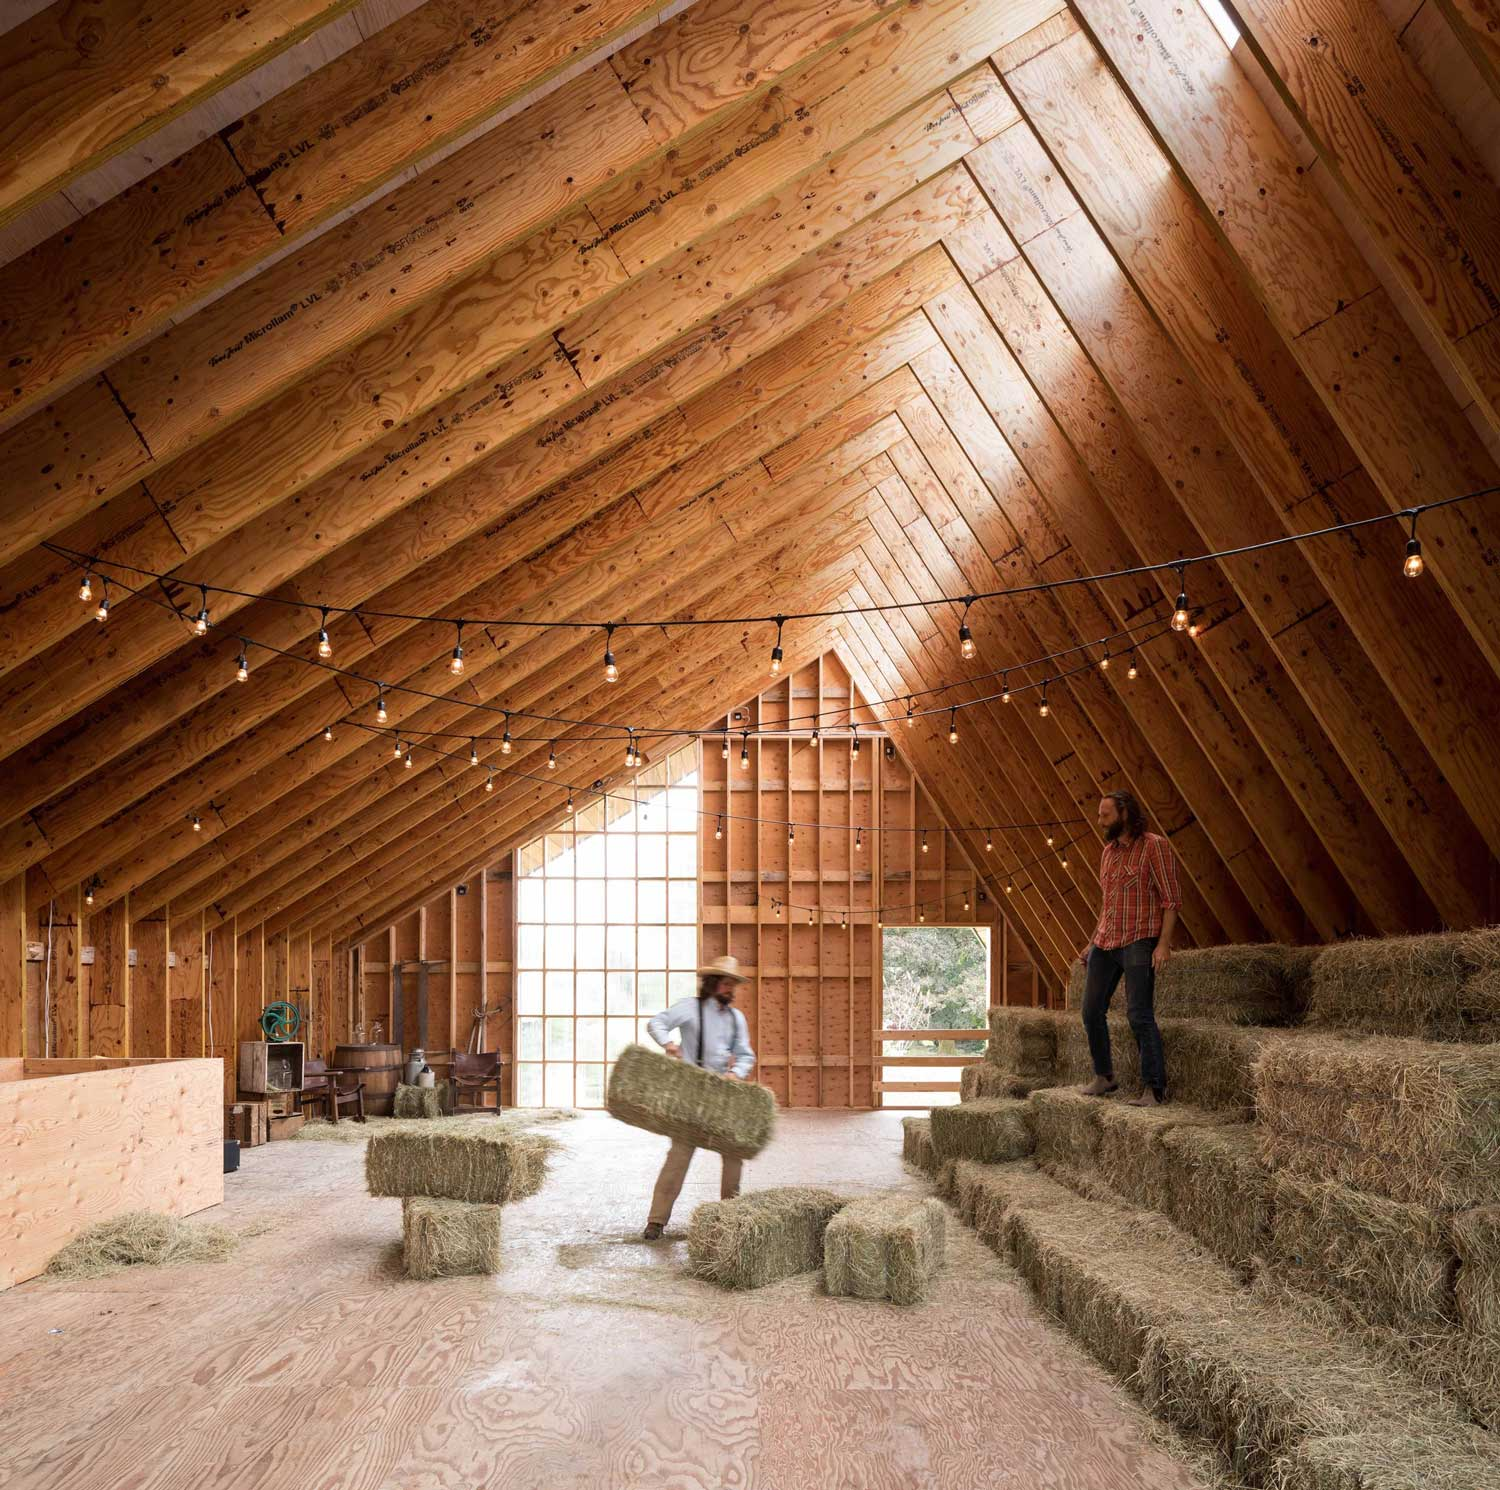 Swallowfield Barn In Langley, Canada By MOTIV Architects